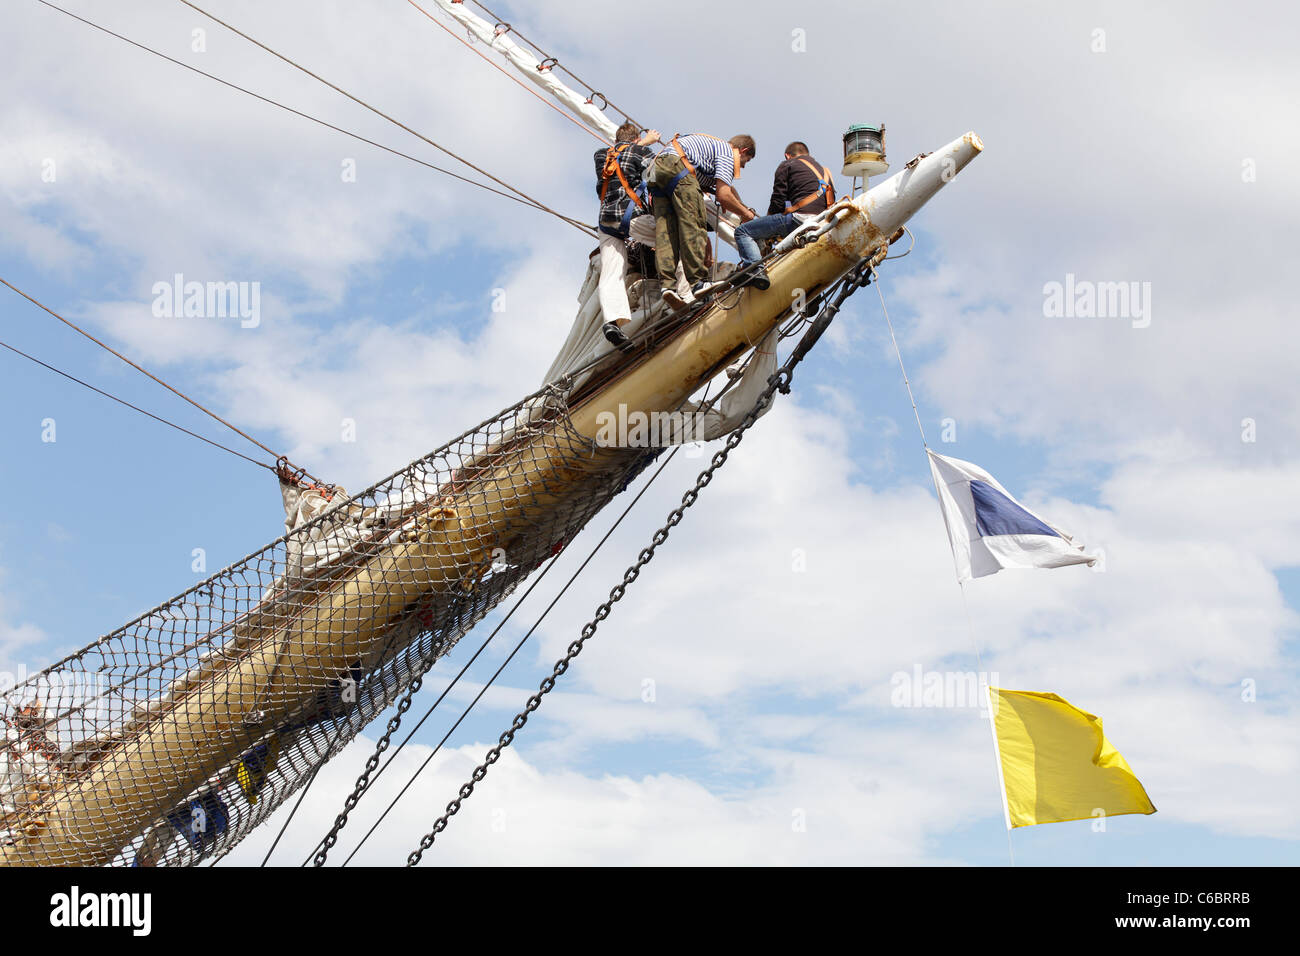 Crew working on a ship berthed at the Tall Ships Race 2011 in Greenock, Scotland, UK - Stock Image